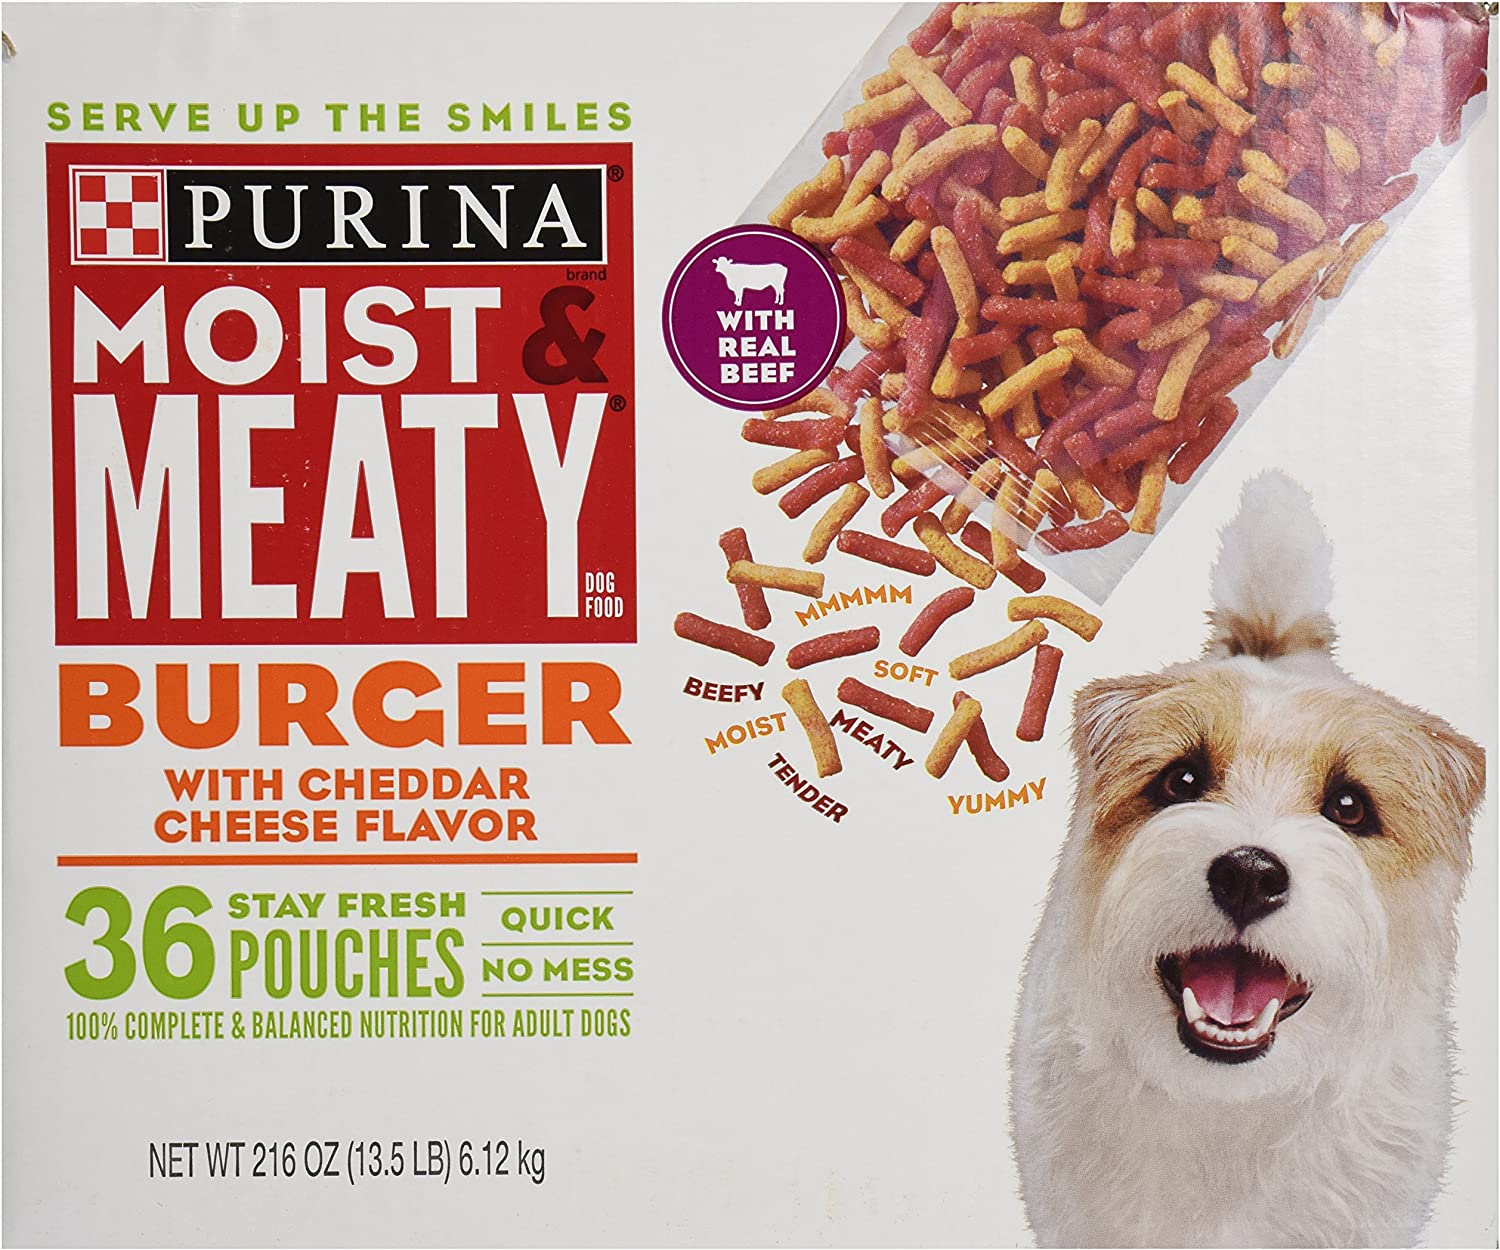 Purina Moist & Meaty Burger with Cheddar Cheese Flavor Dog Food [Misc.]